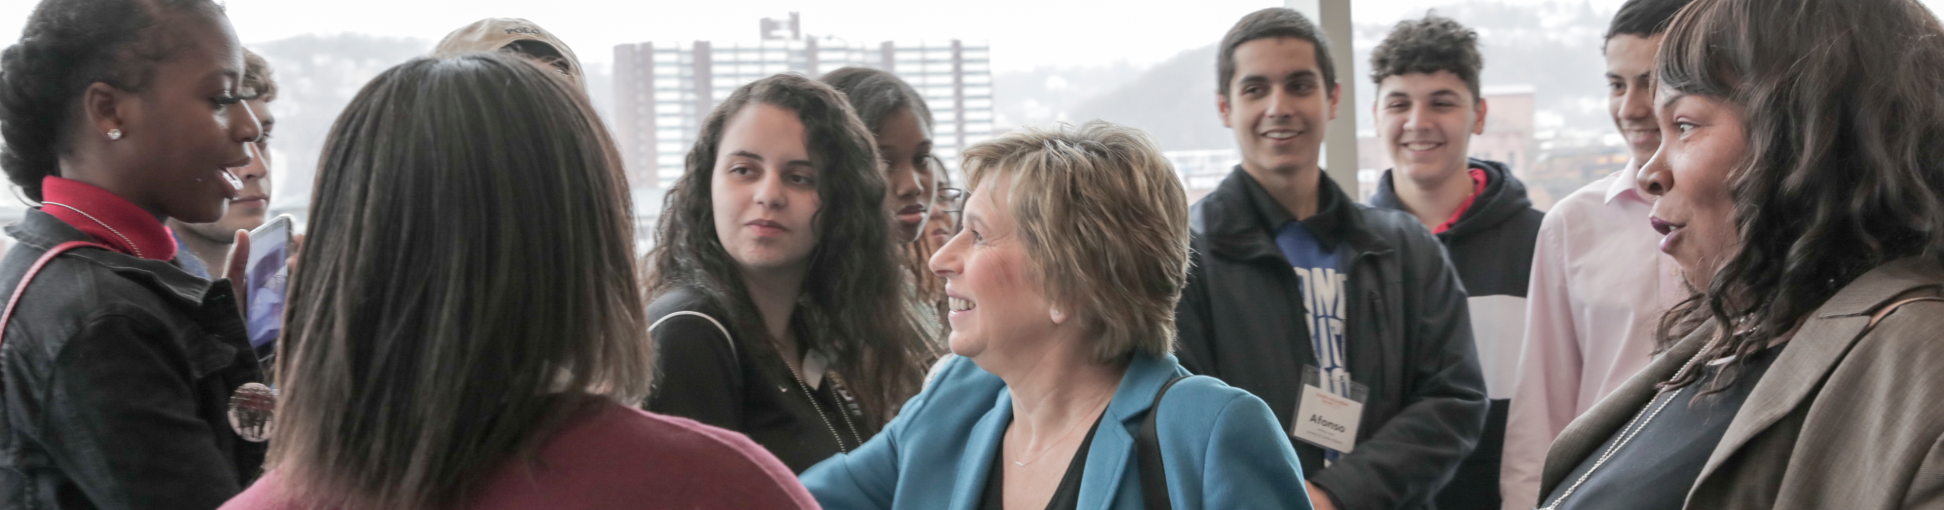 Randi Weingarten with students at Education Forum